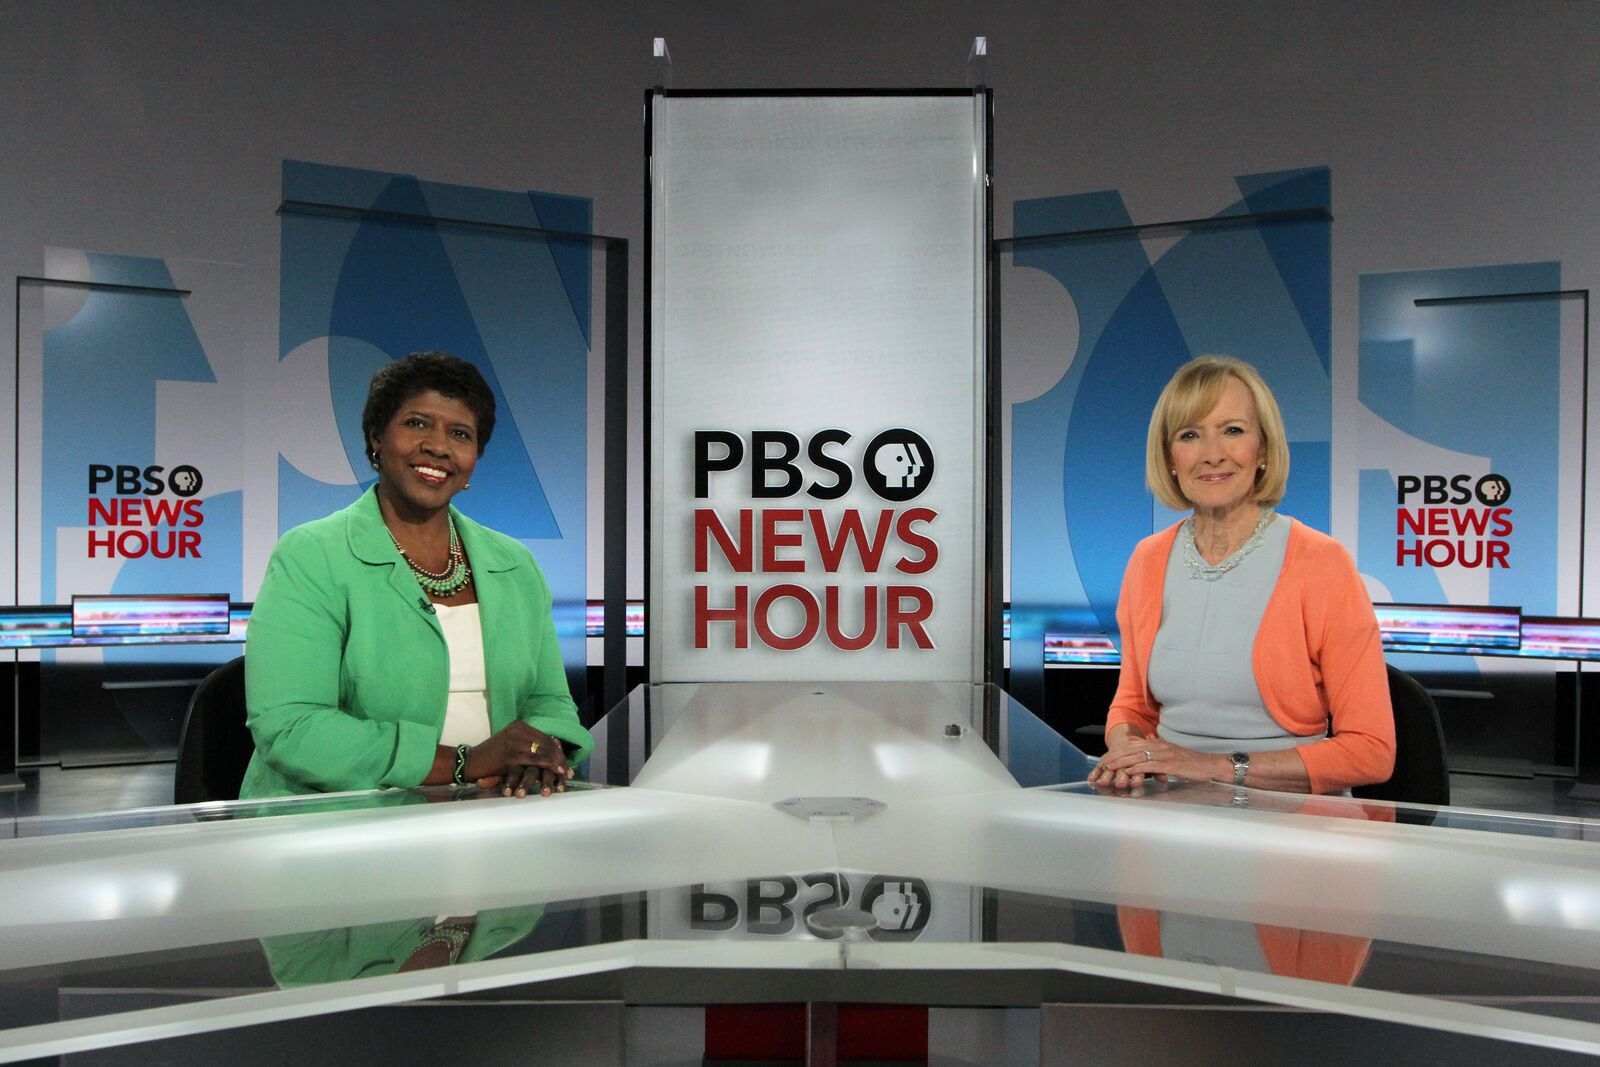 PBS Newshour New Set